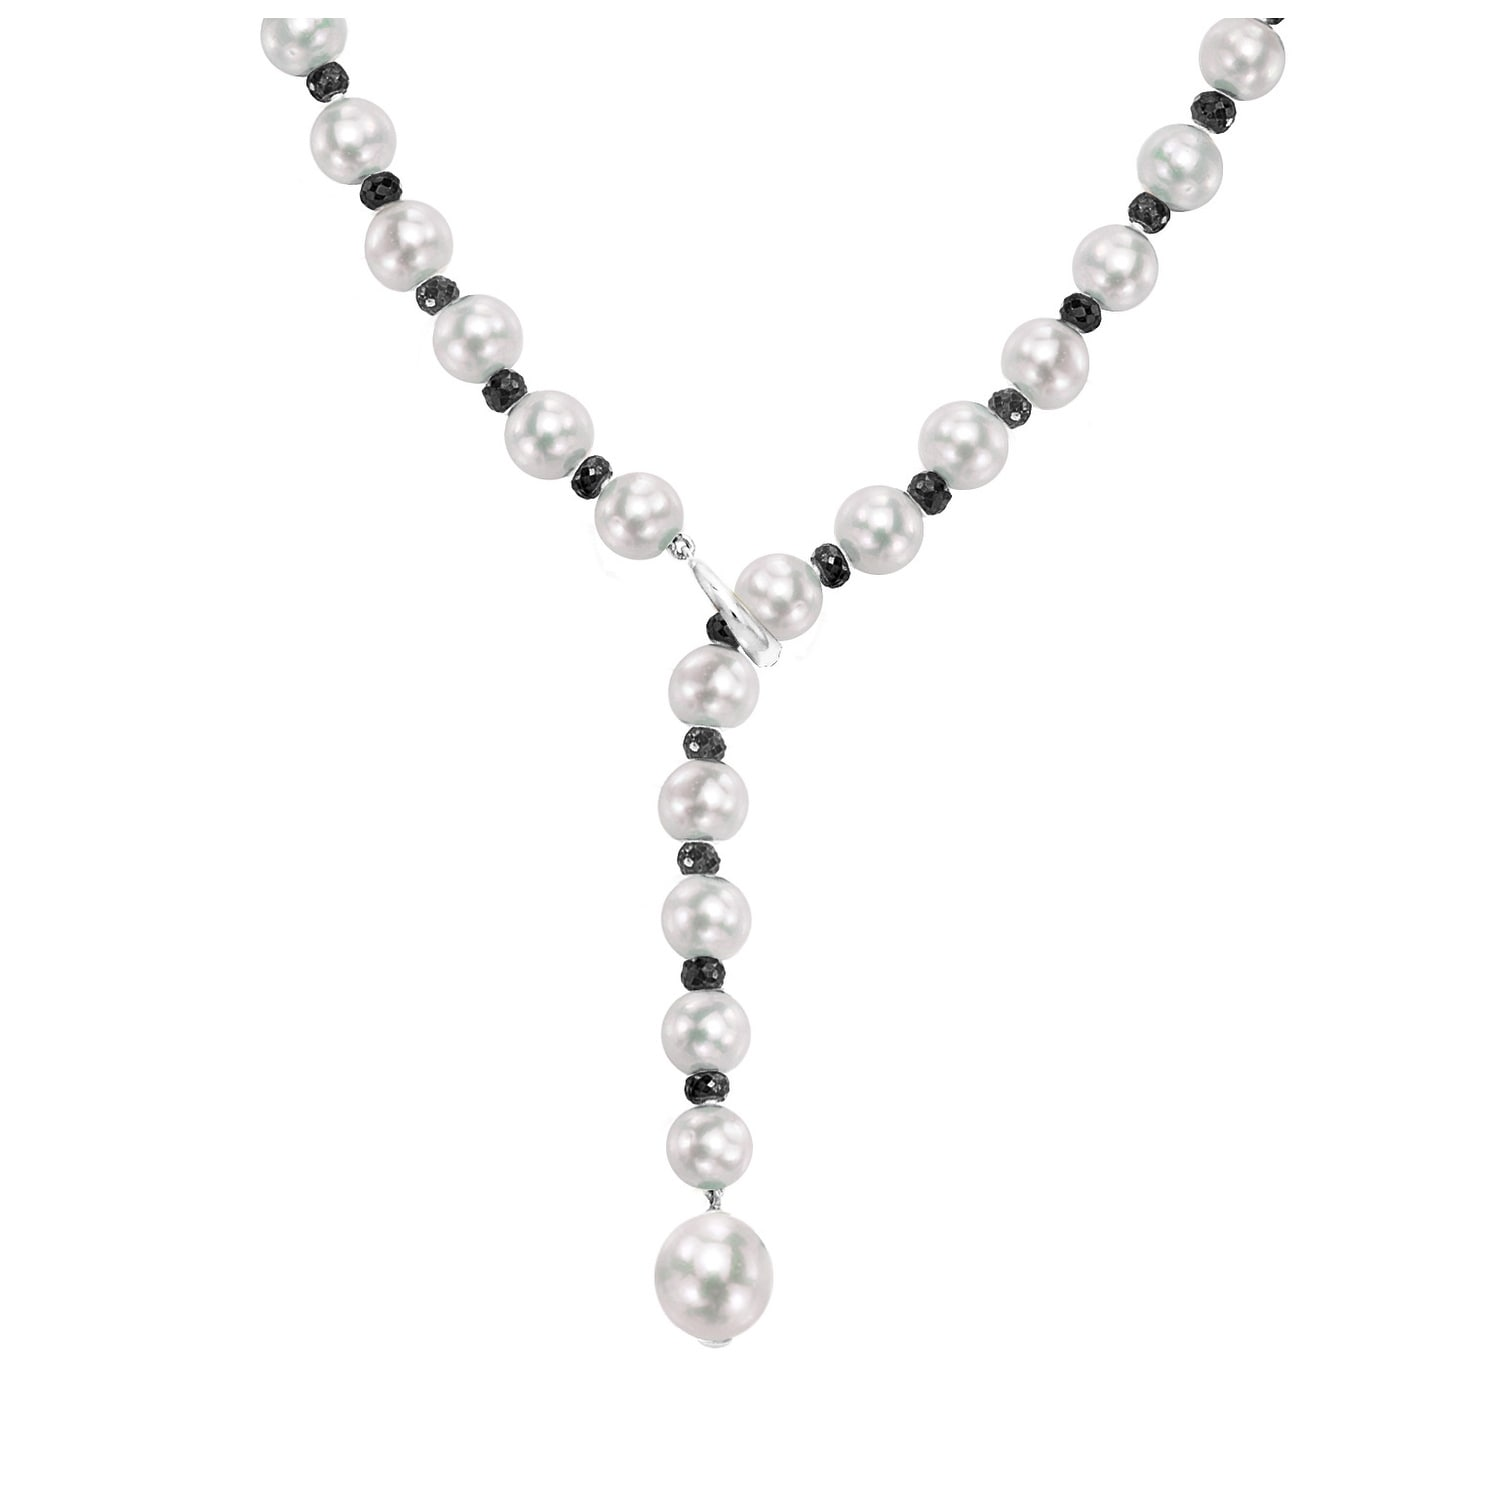 Jewelry Necklaces Pearls 14k White Gold 8-9mm Grey Rice Freshwater Cultured Pearl Necklace